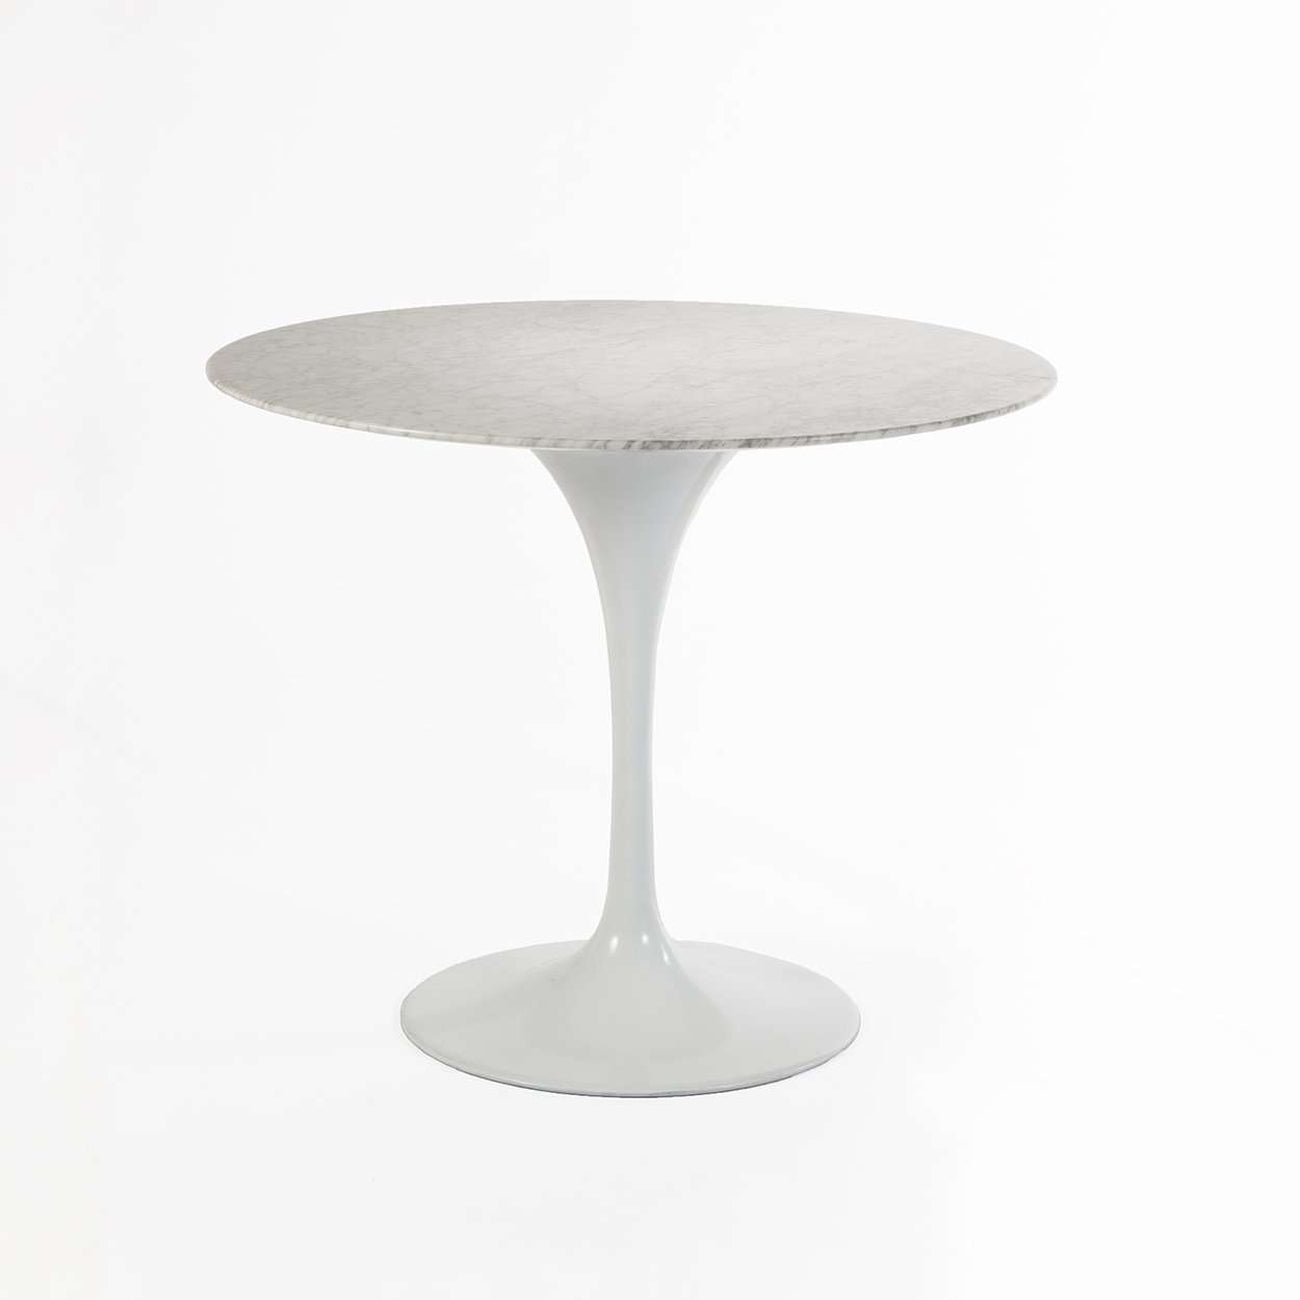 30 dining table round marble tulip dining table 30 midcentury modern reproduction 30